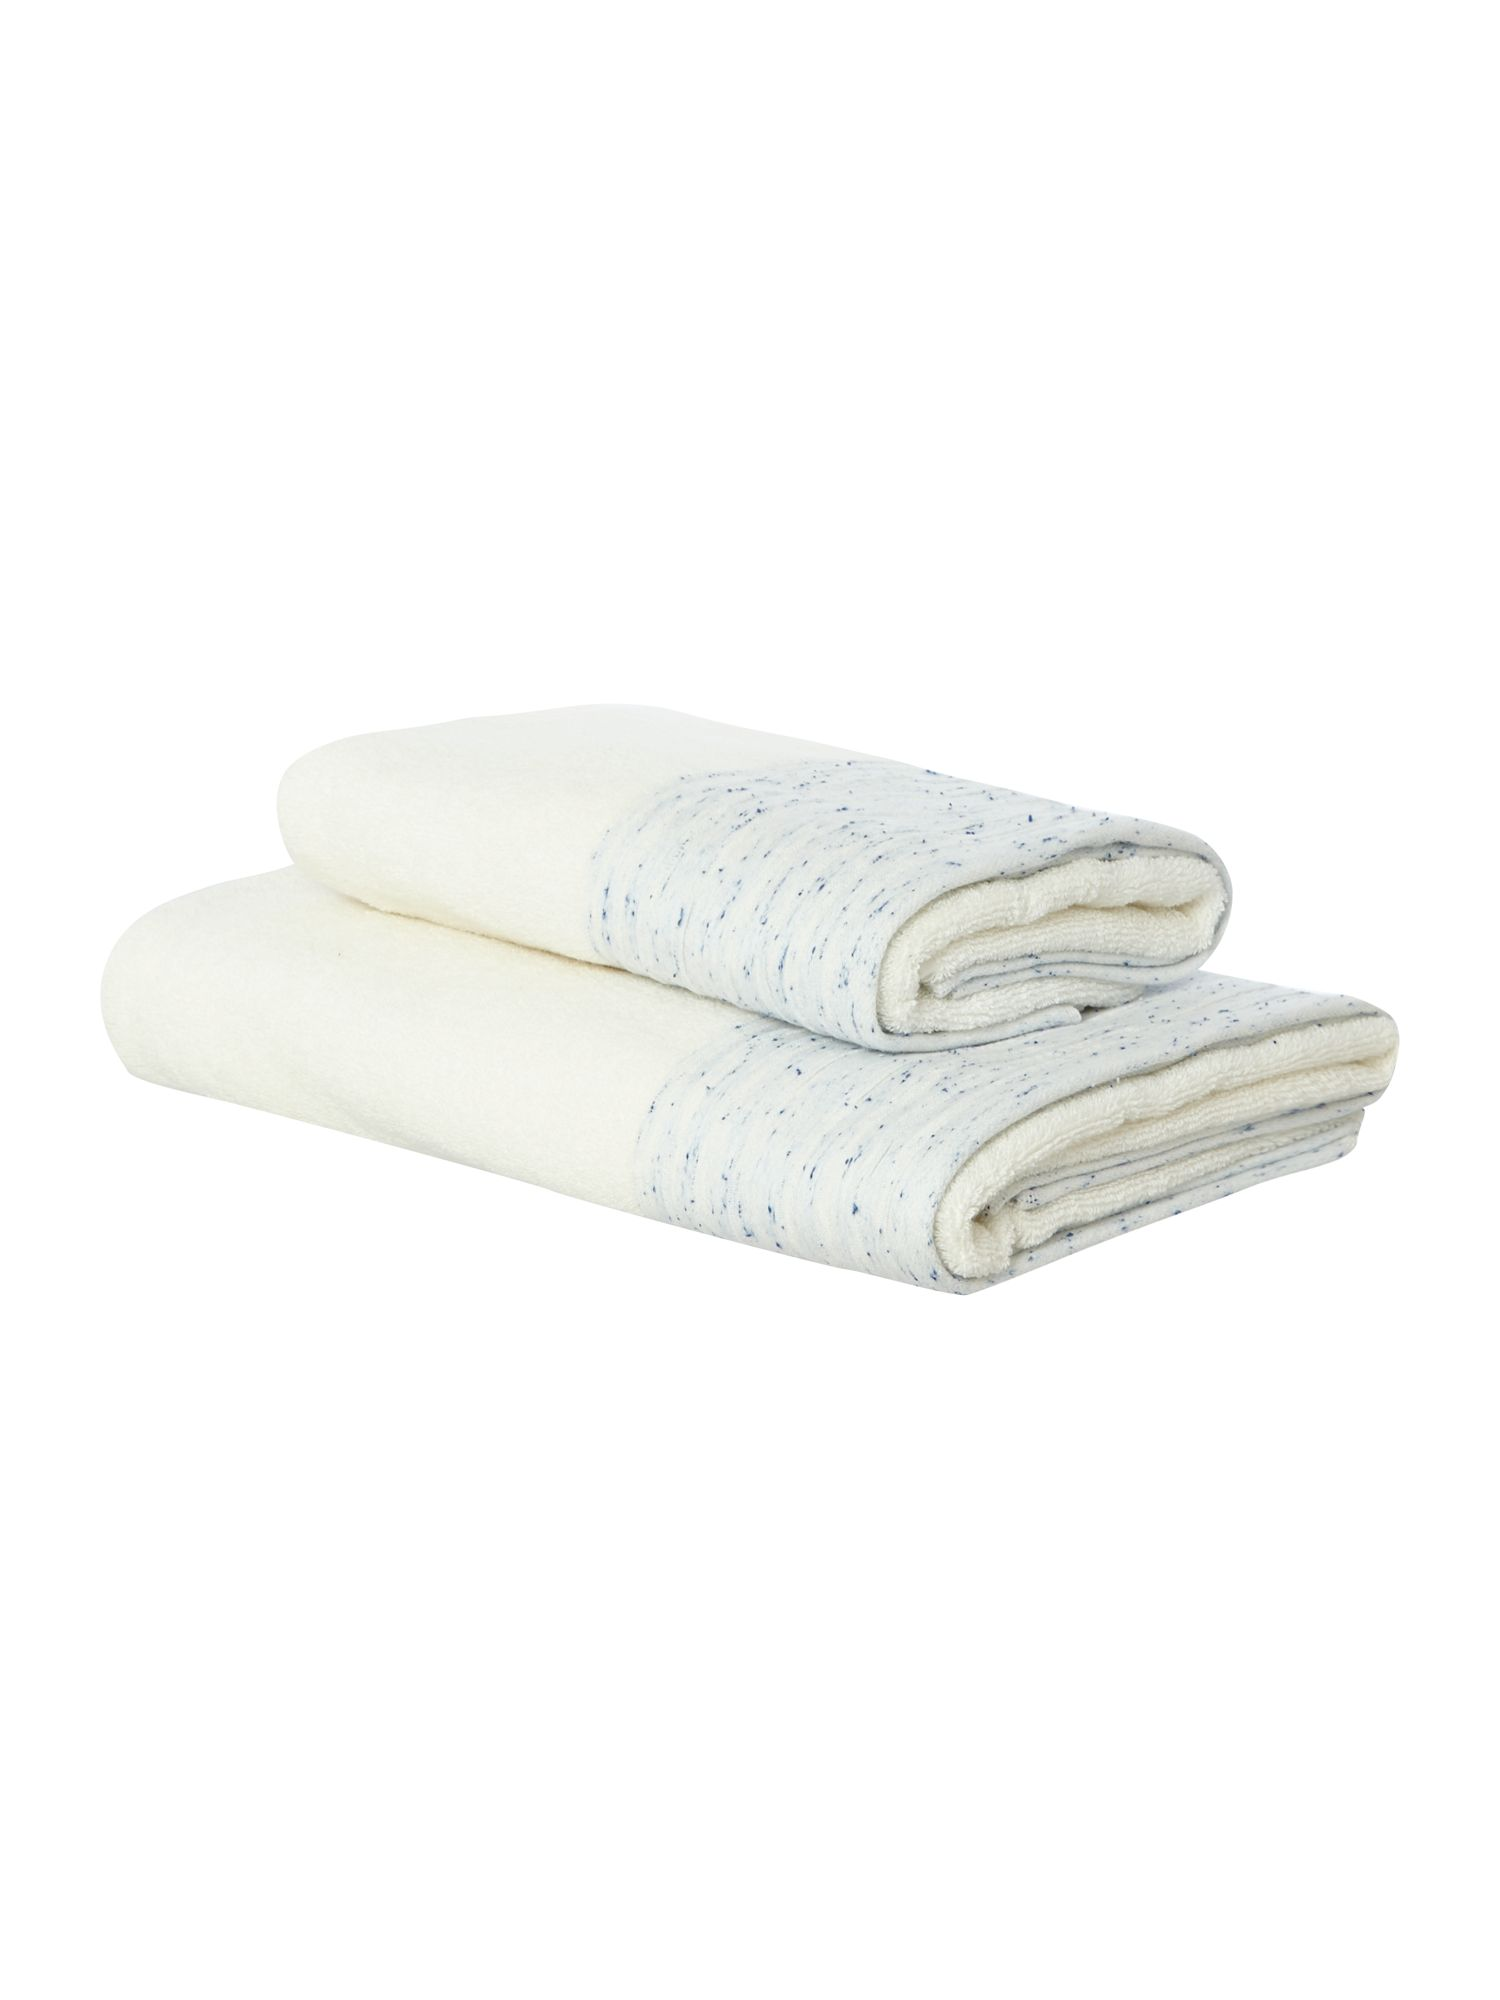 Fleck Denim Towel Range